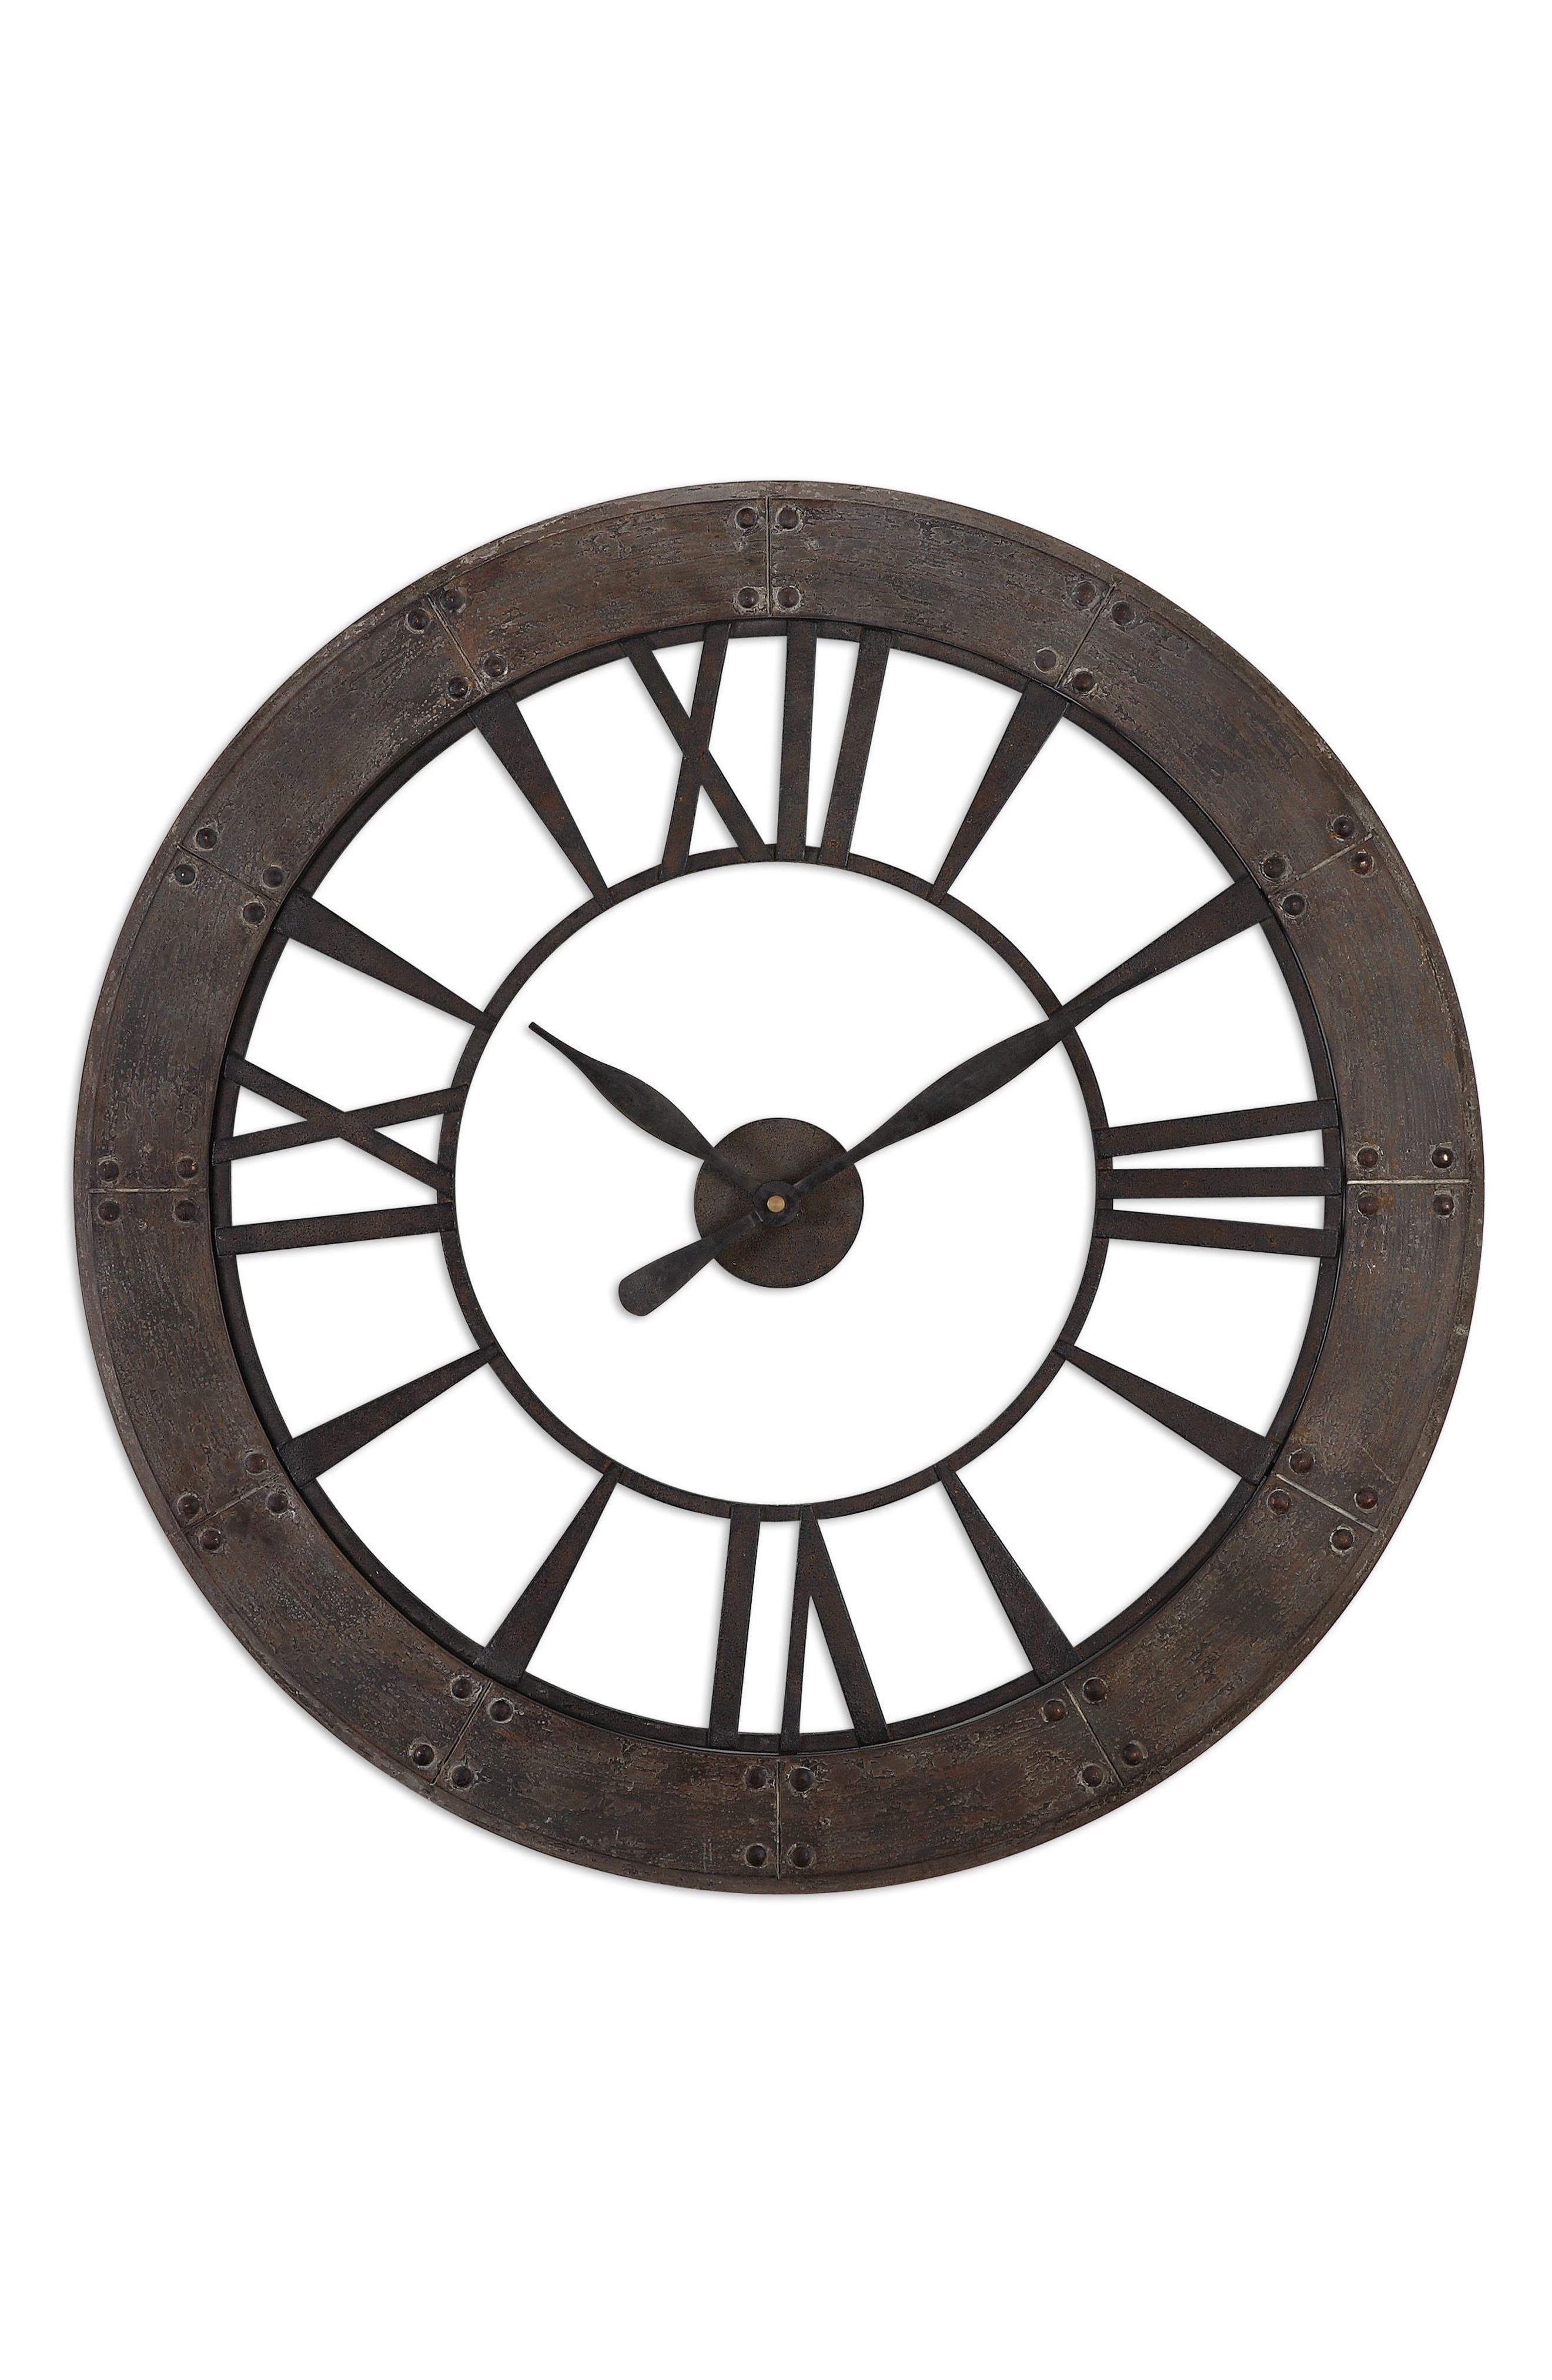 Ronan Wall Clock,                             Main thumbnail 1, color,                             Metallic Rust/ Copper